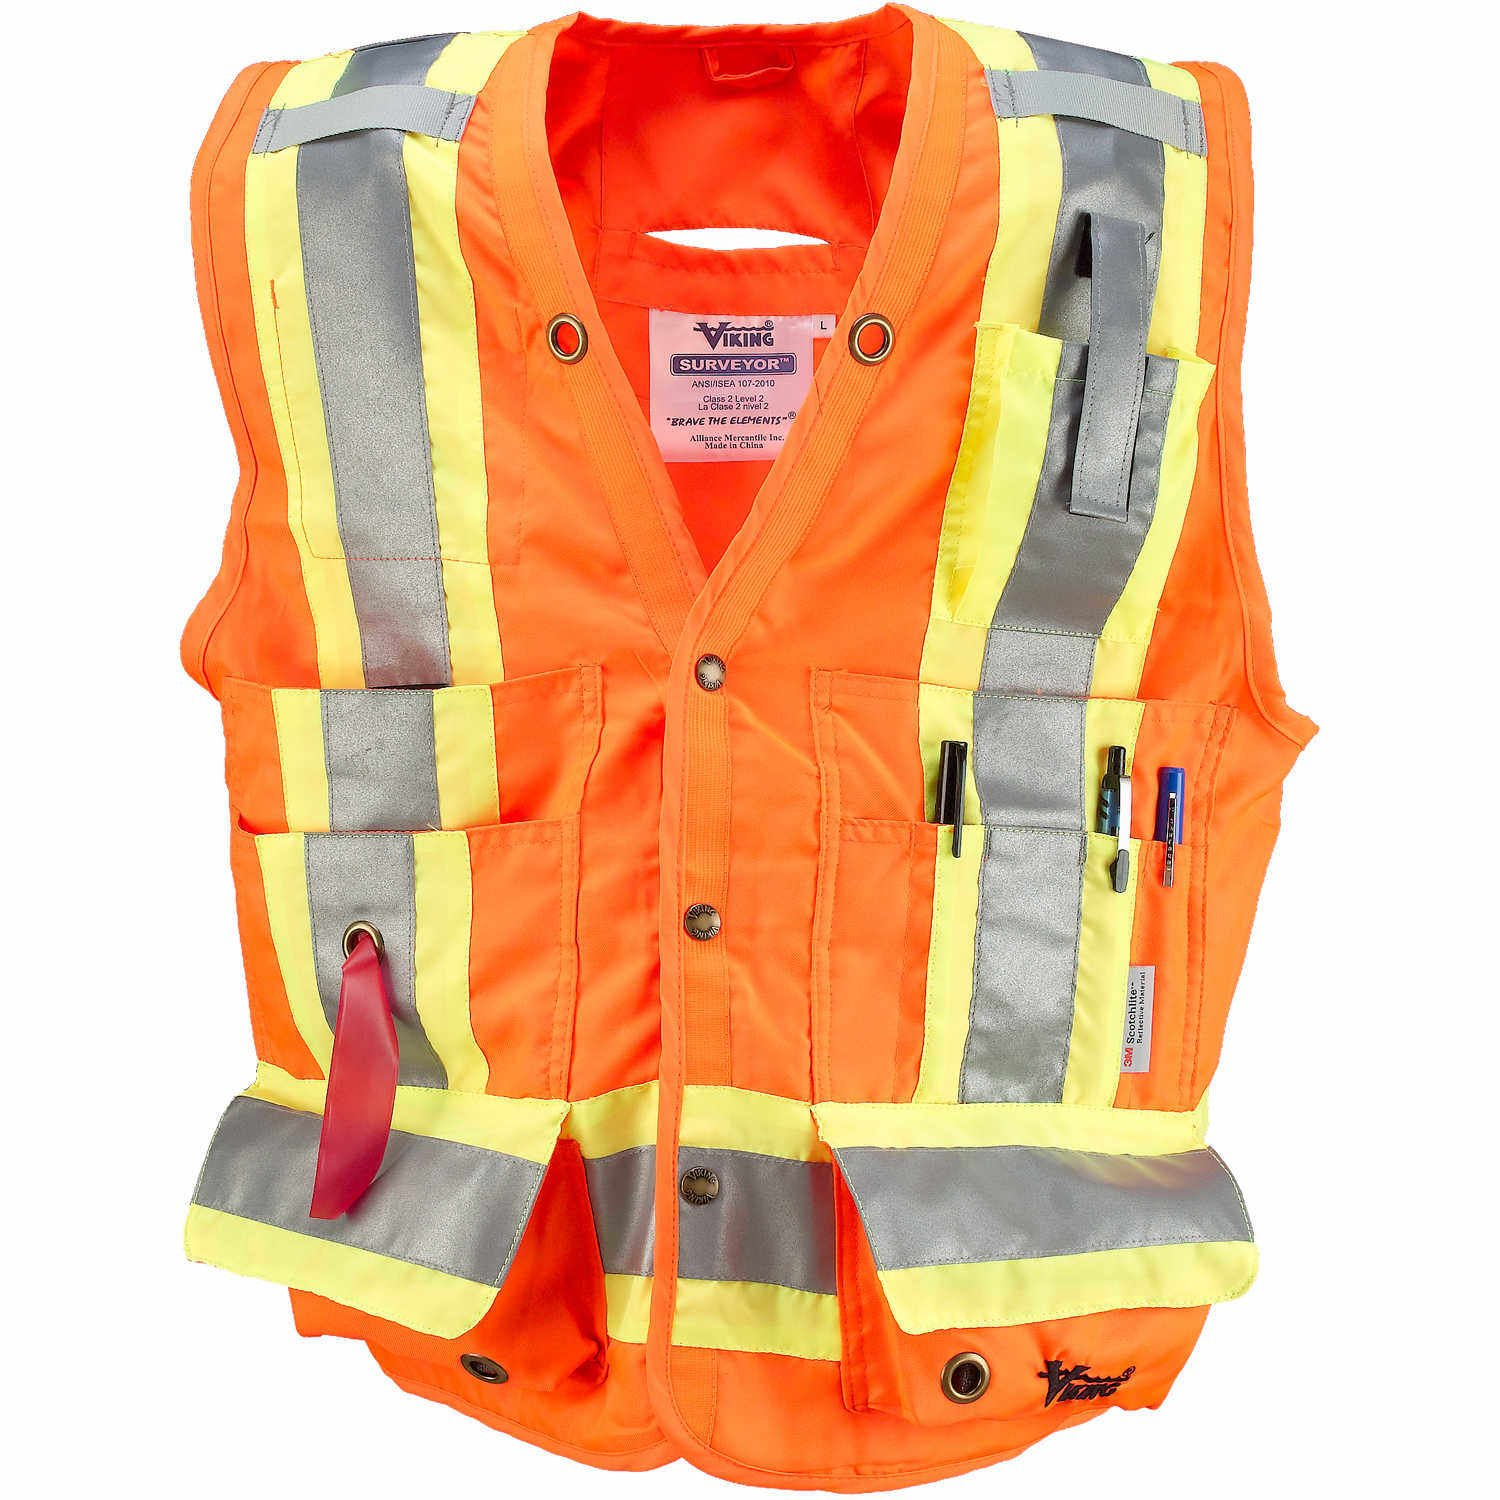 Viking Surveyor Hi-Vis Safety Vest, Orange, 3X-Large